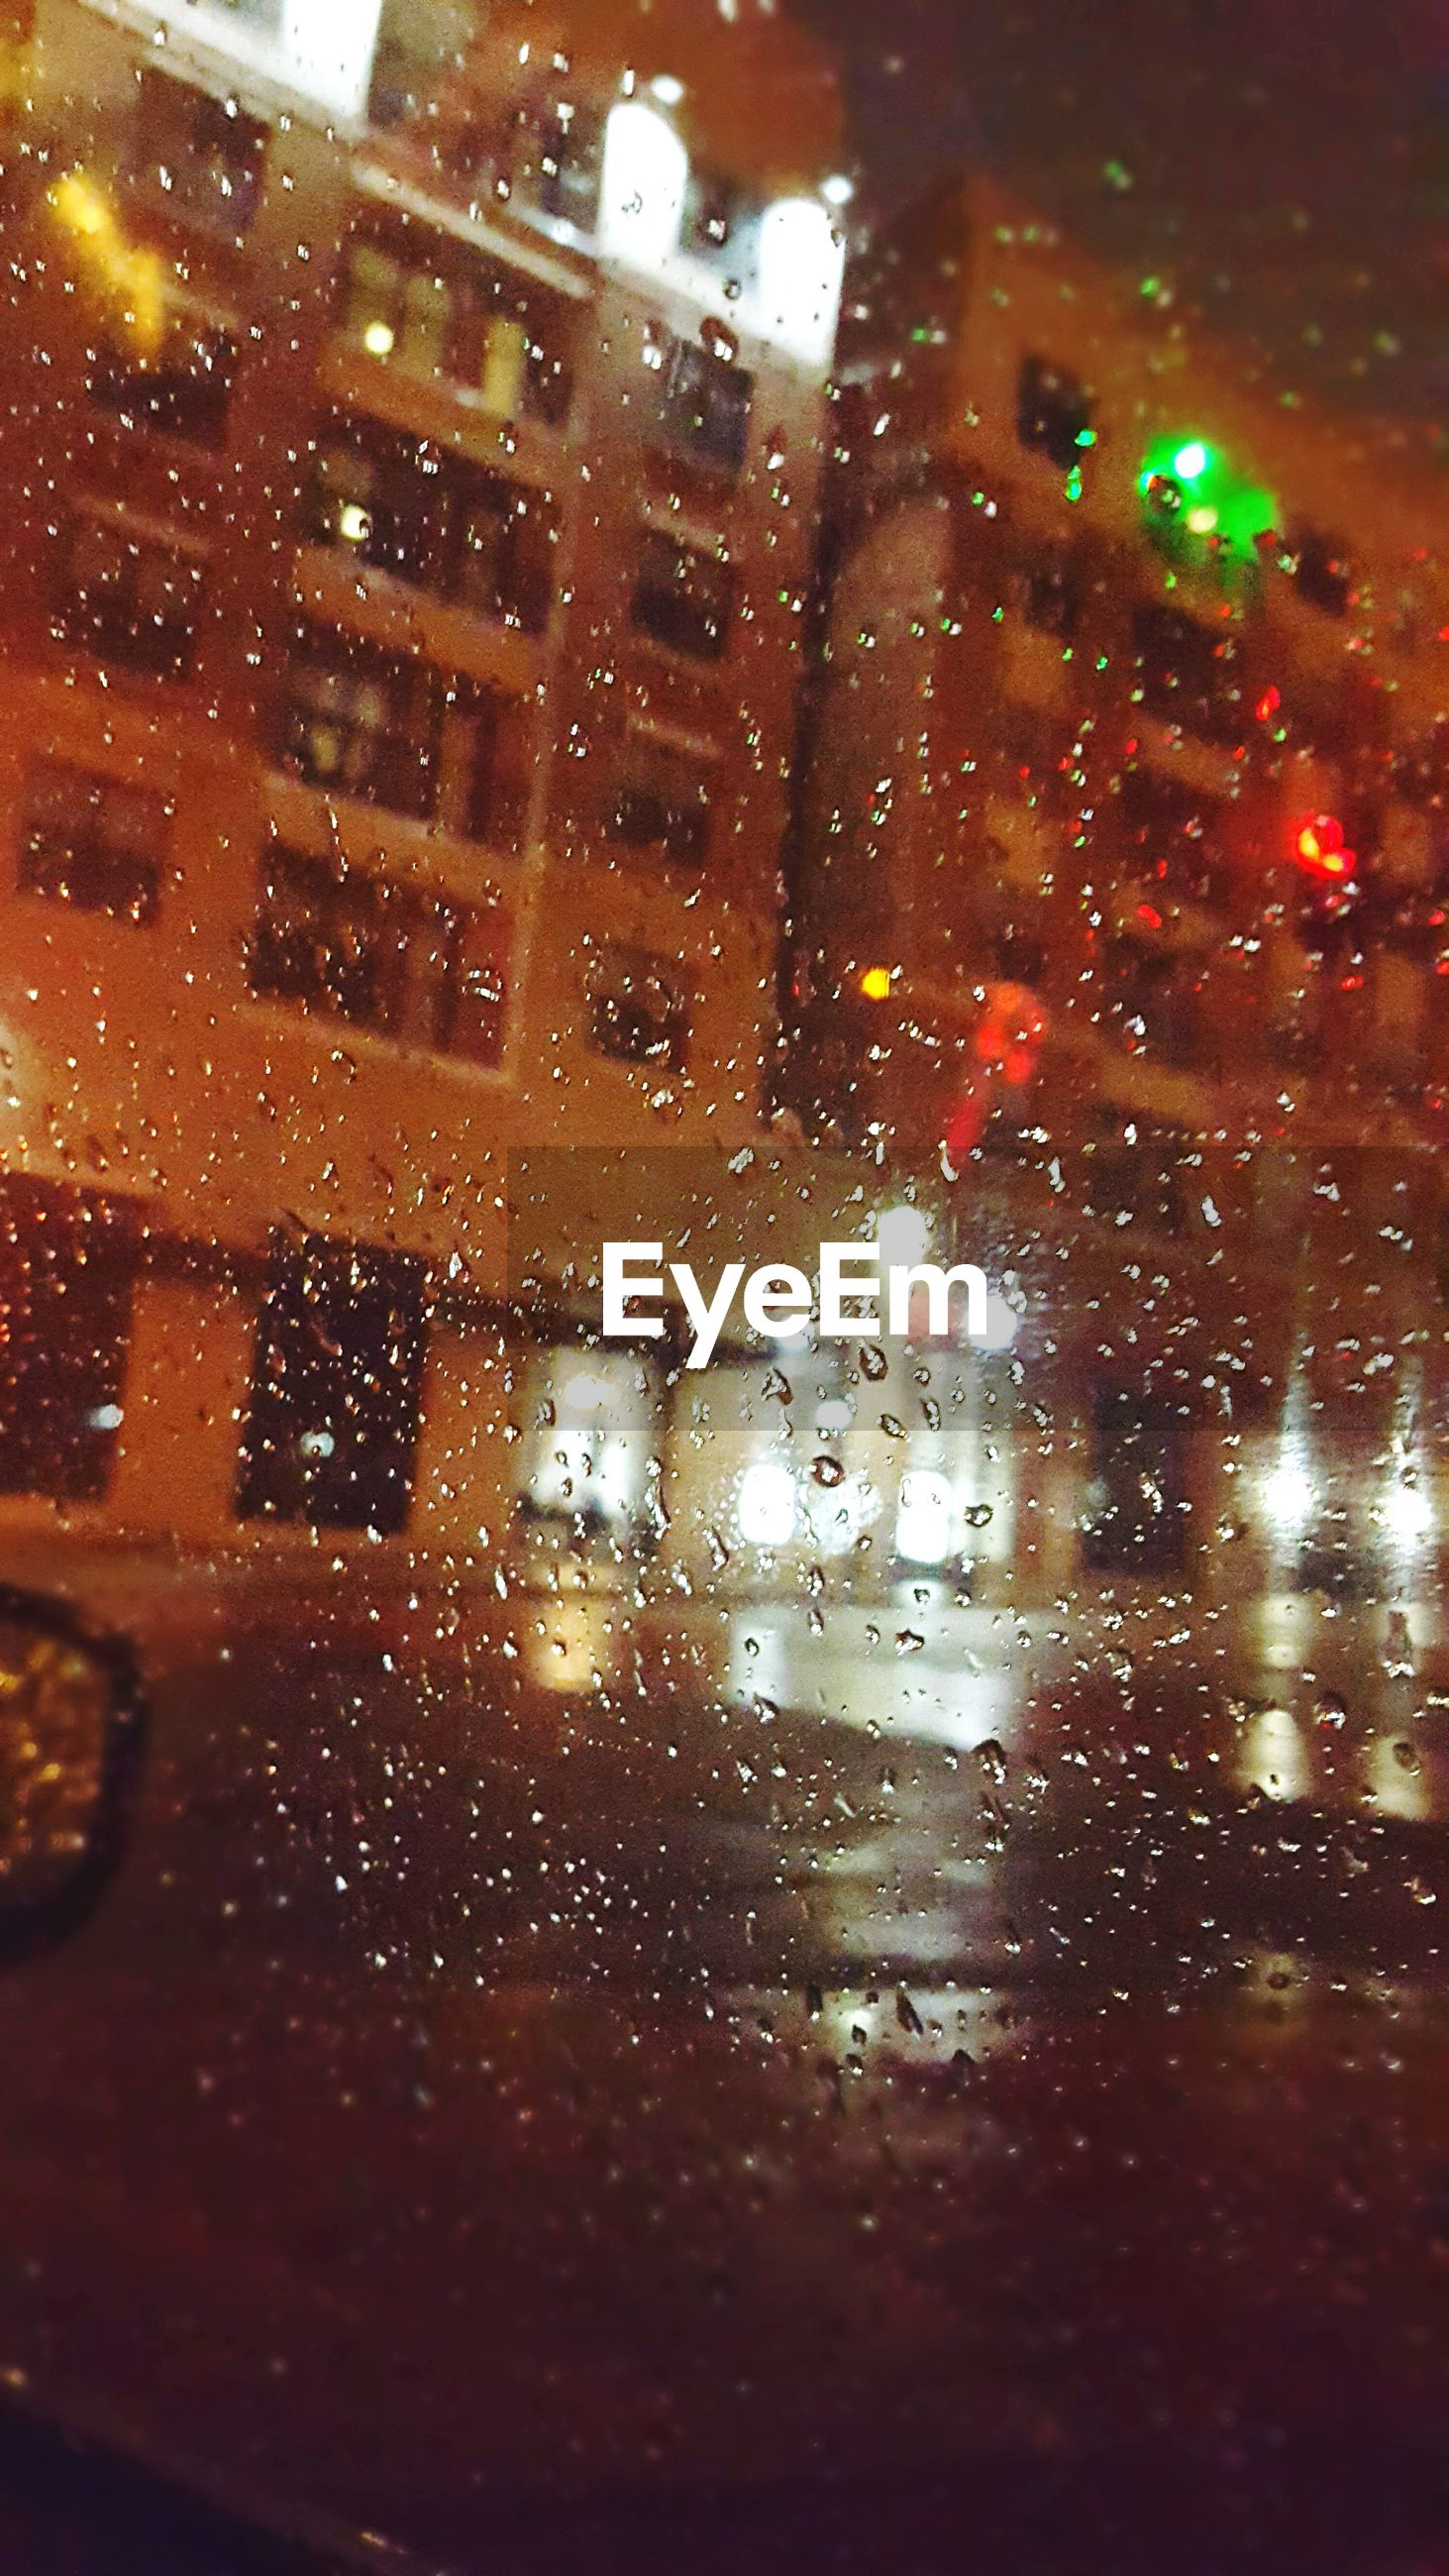 Street and building seen through wet car windshield at night during monsoon